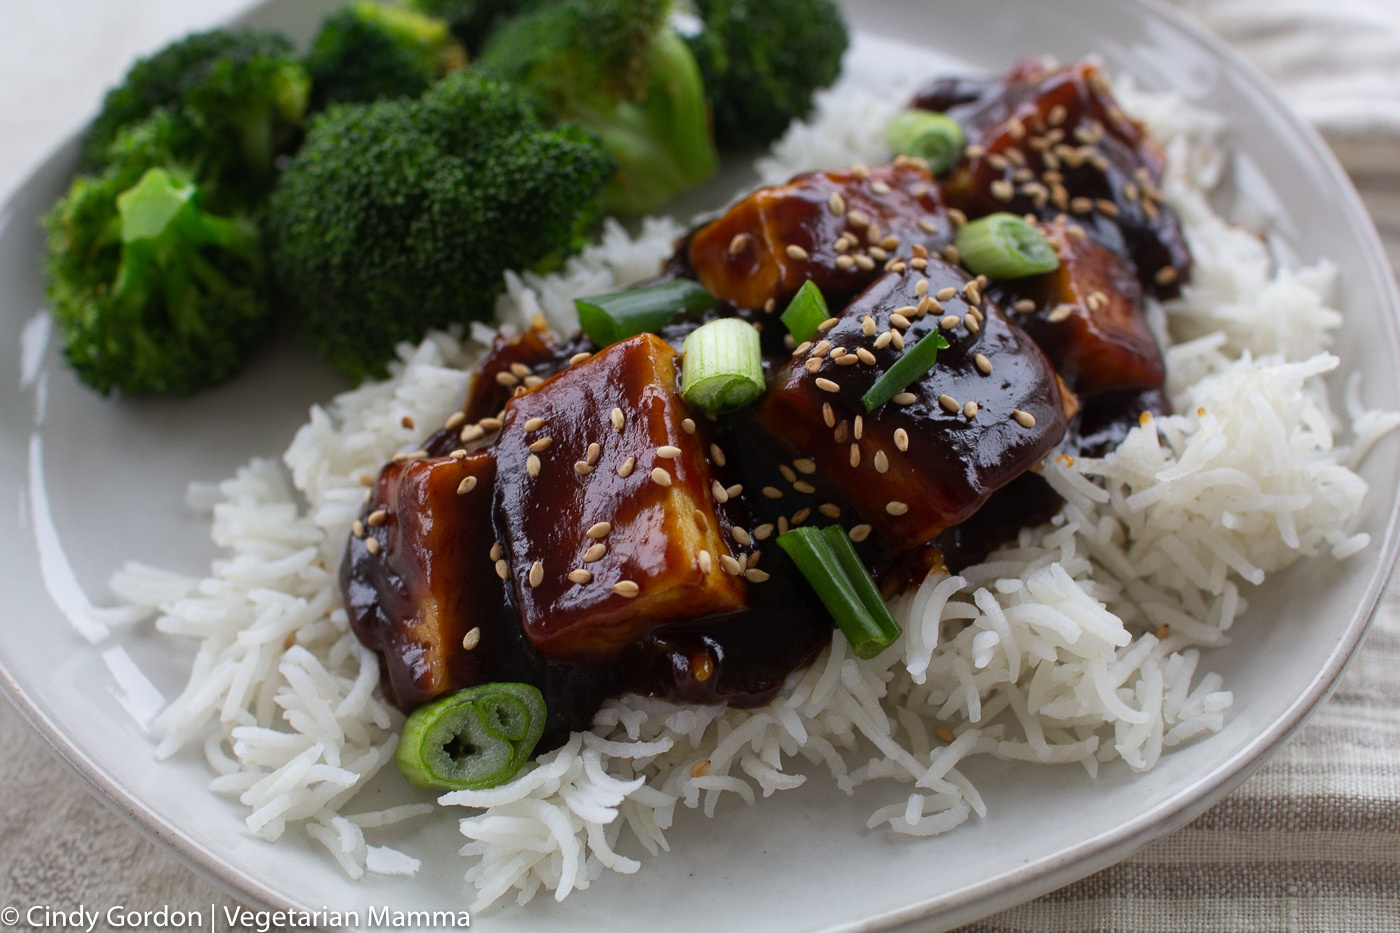 Saucy General Tso Tofu served over rice on a white plate